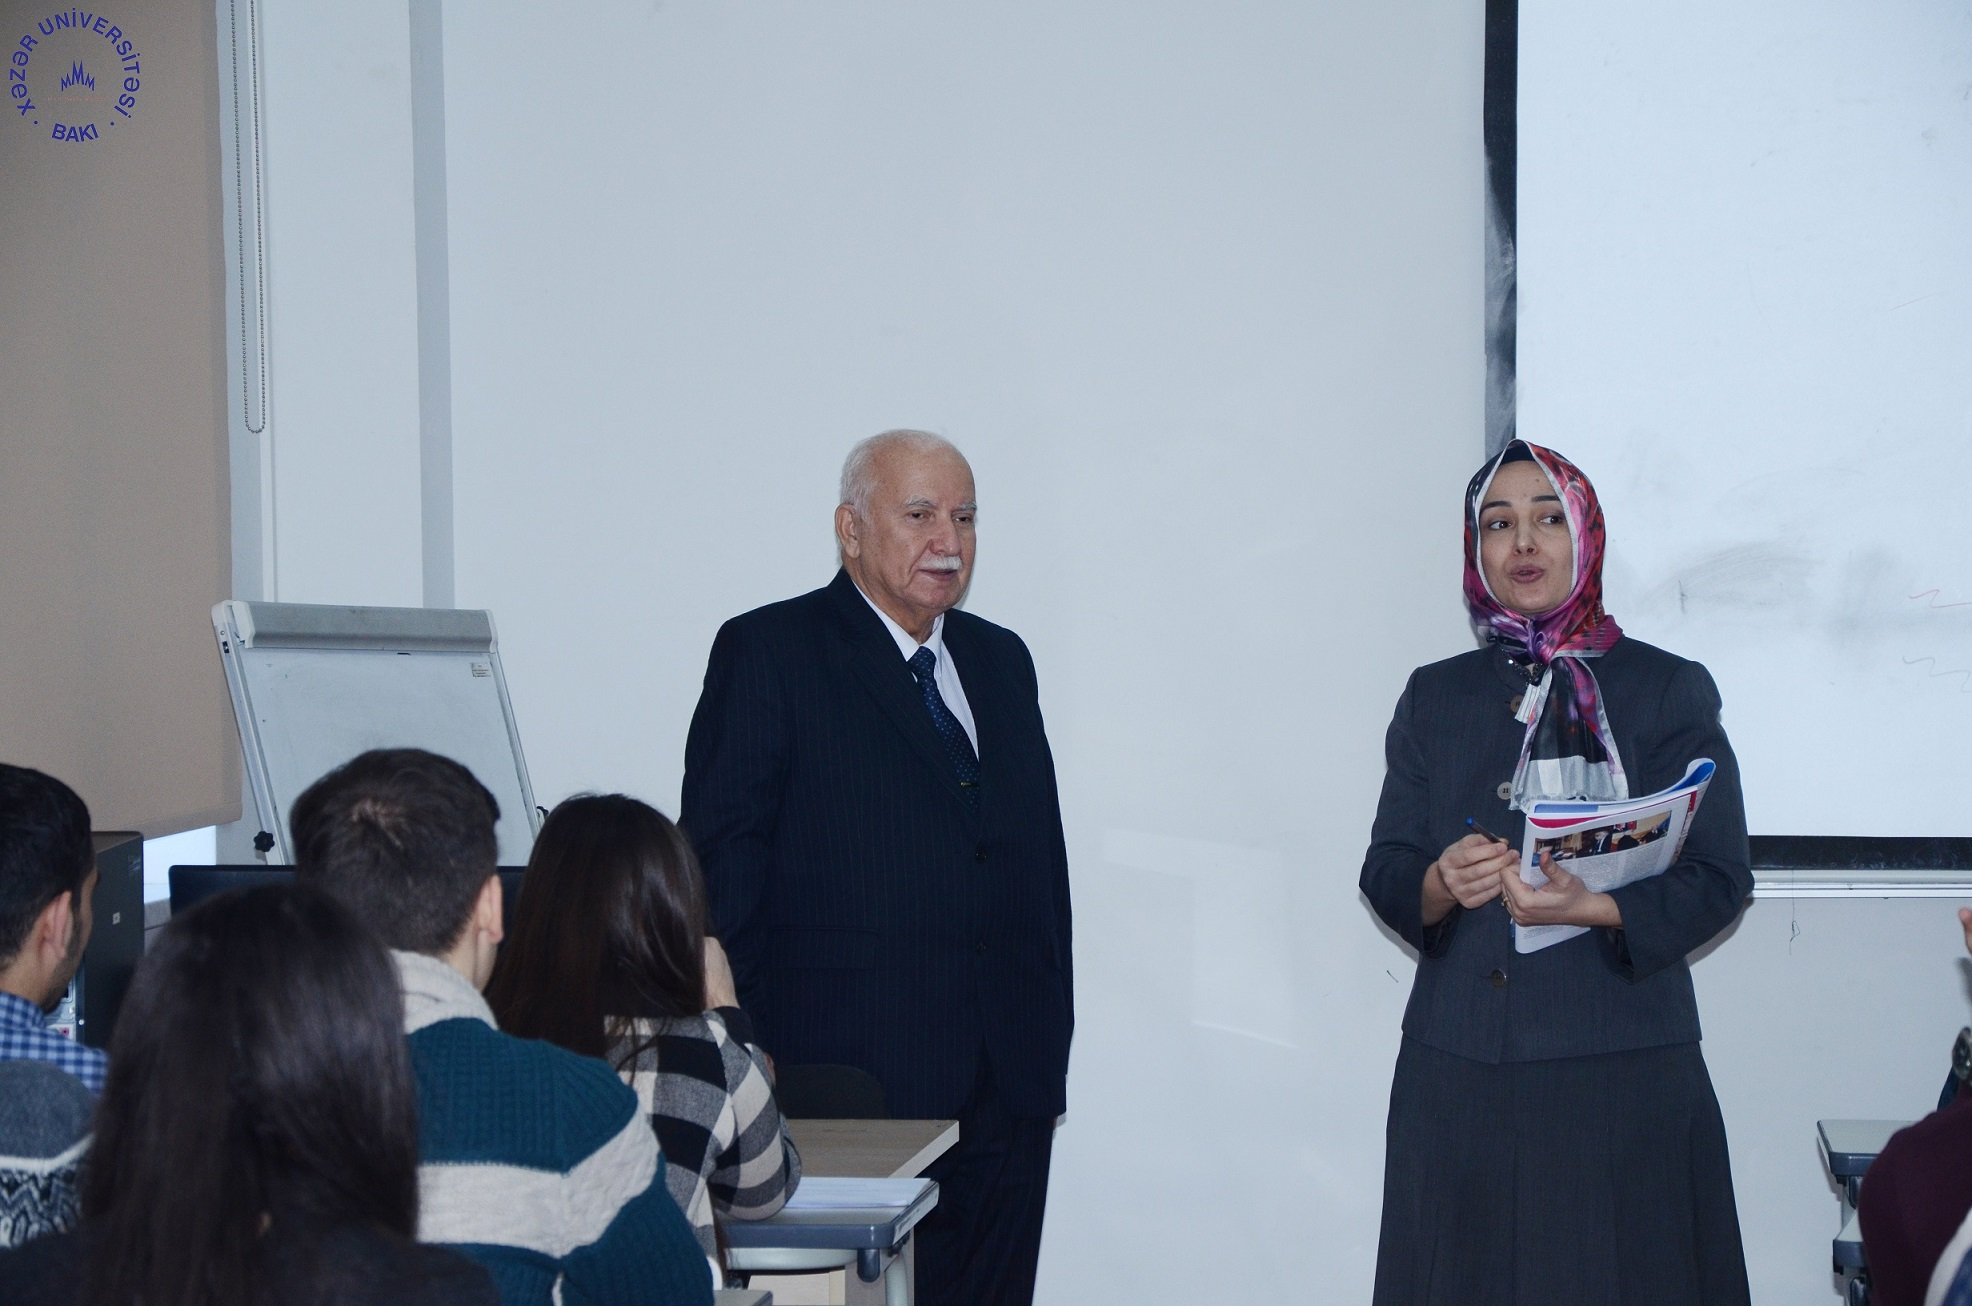 BSU Professor Gives Guest Lecture at Khazar